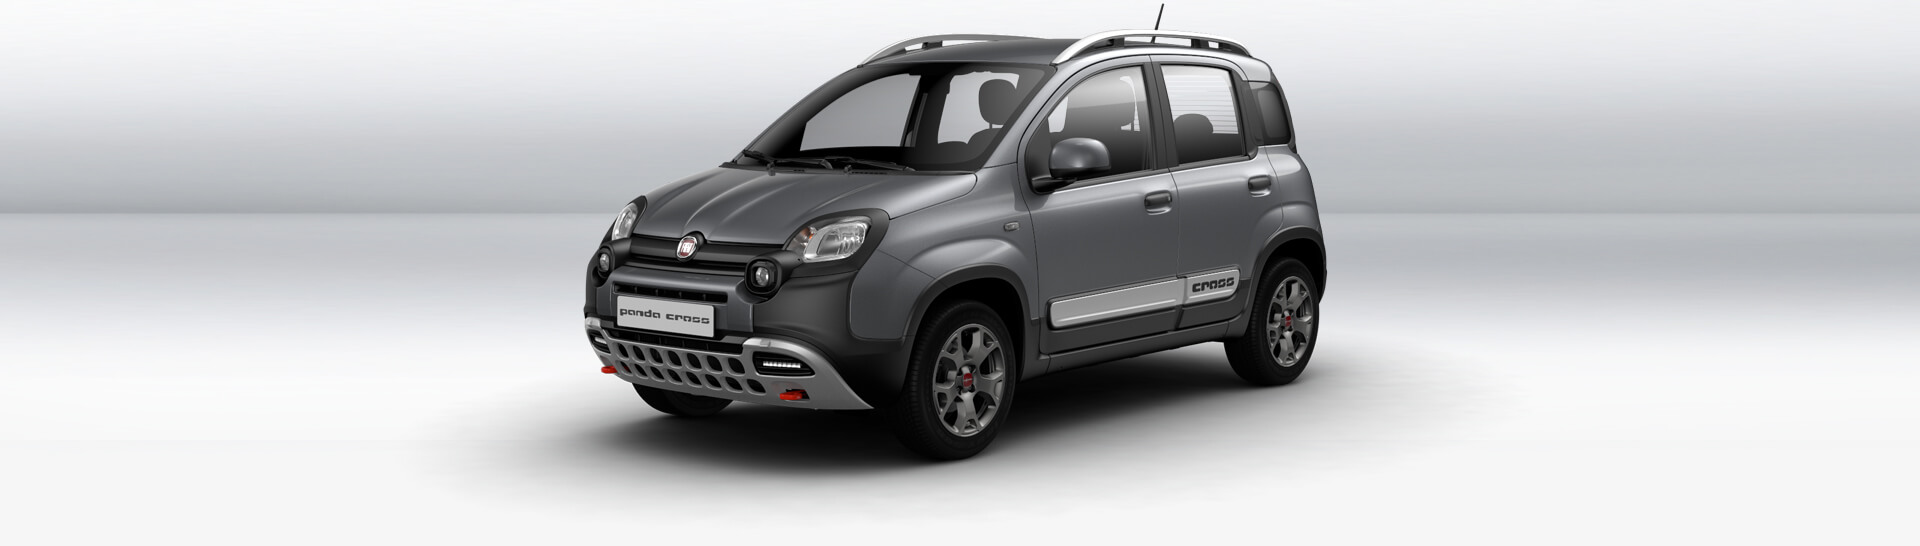 la nouvelle fiat panda cross webzine auto bymycar. Black Bedroom Furniture Sets. Home Design Ideas